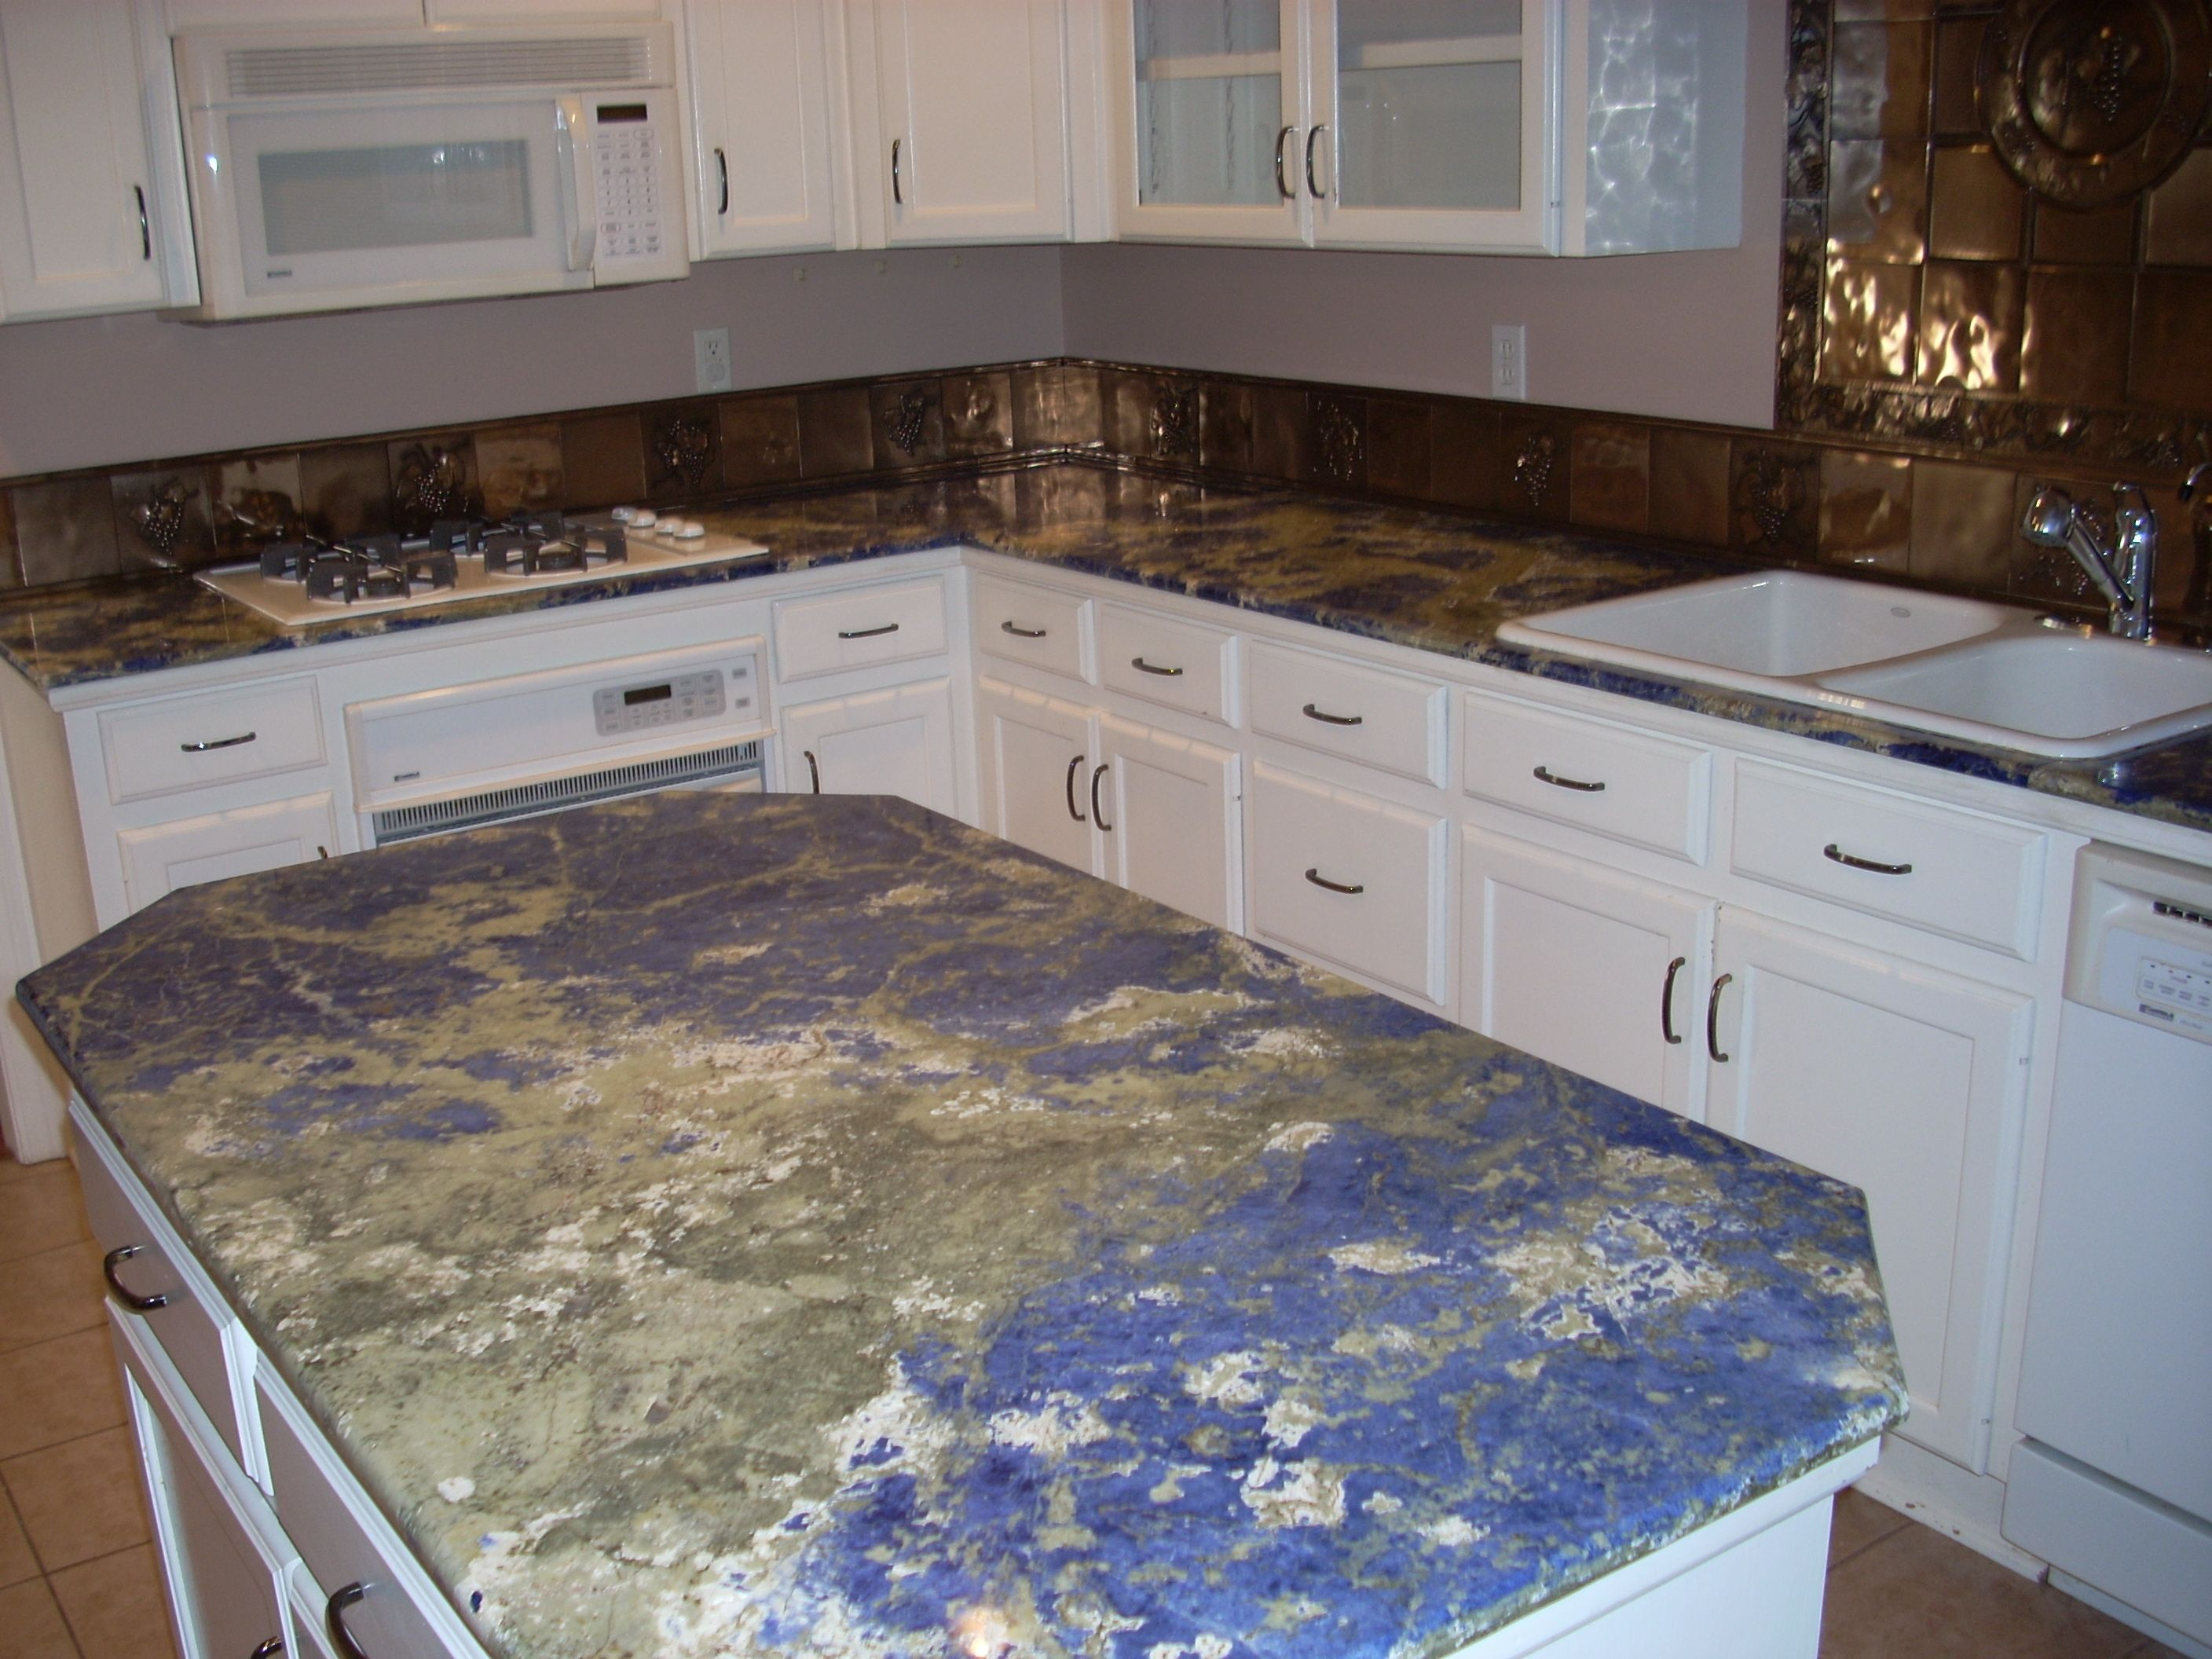 blue countertops | Blue Bahia Granite Countertops (3114), Blue ...